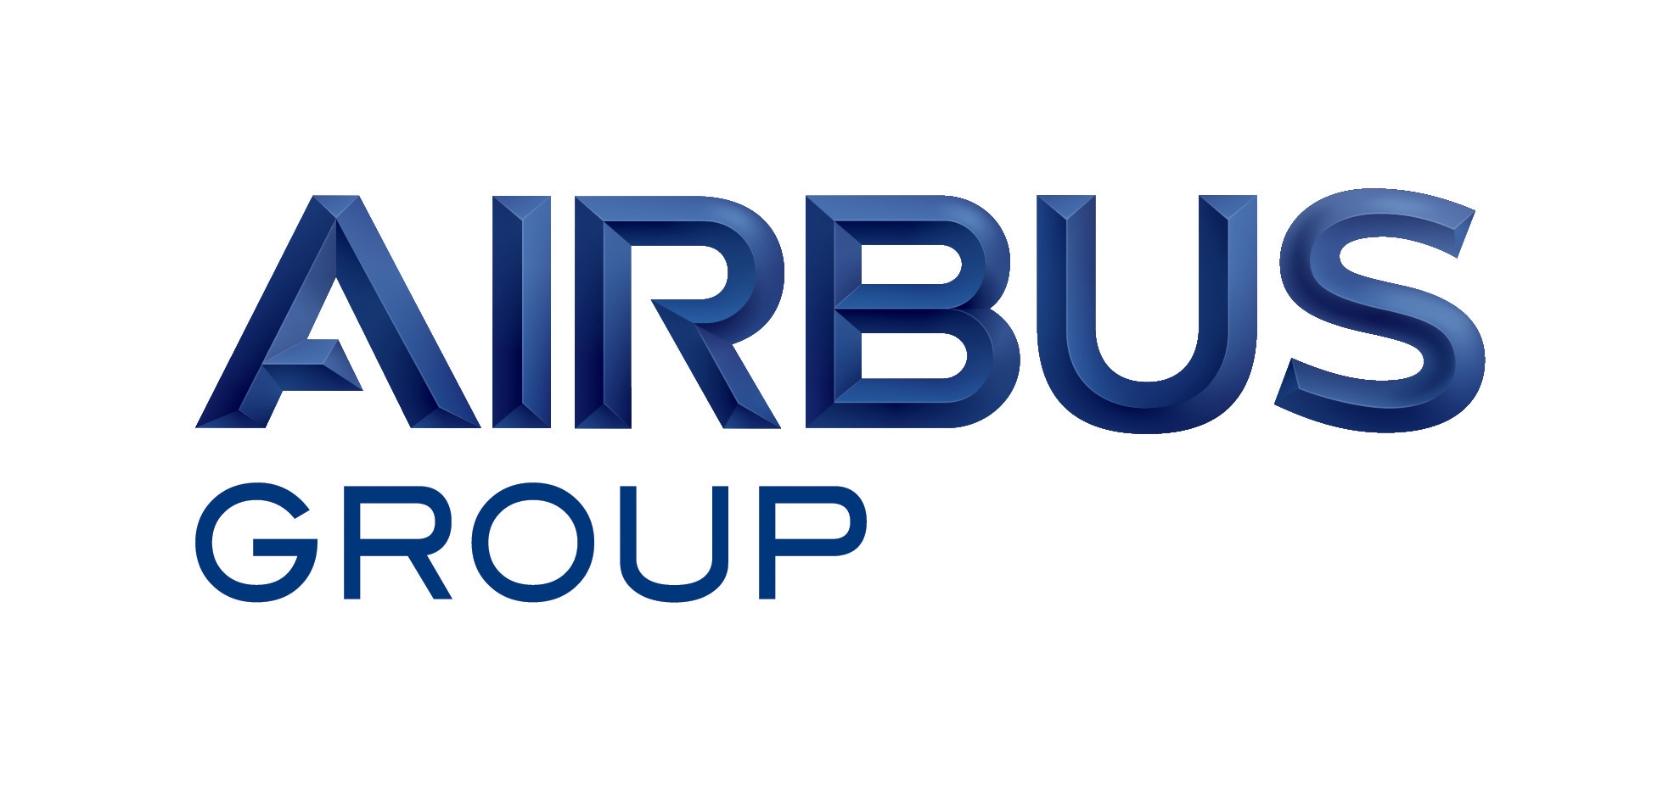 AIRBUS Group 3D Blue RGB.2016 03 16 18 37 28